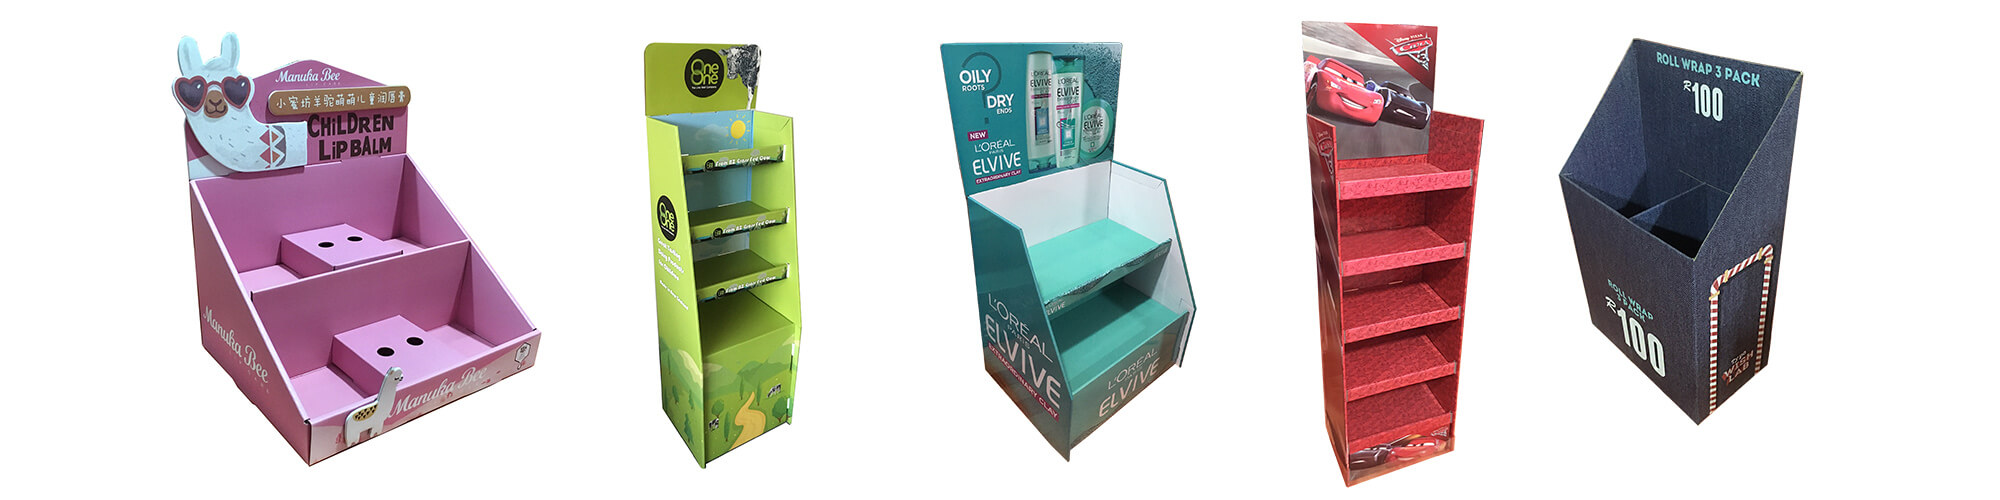 Single Product- Customizable Cardboard Display Boxes